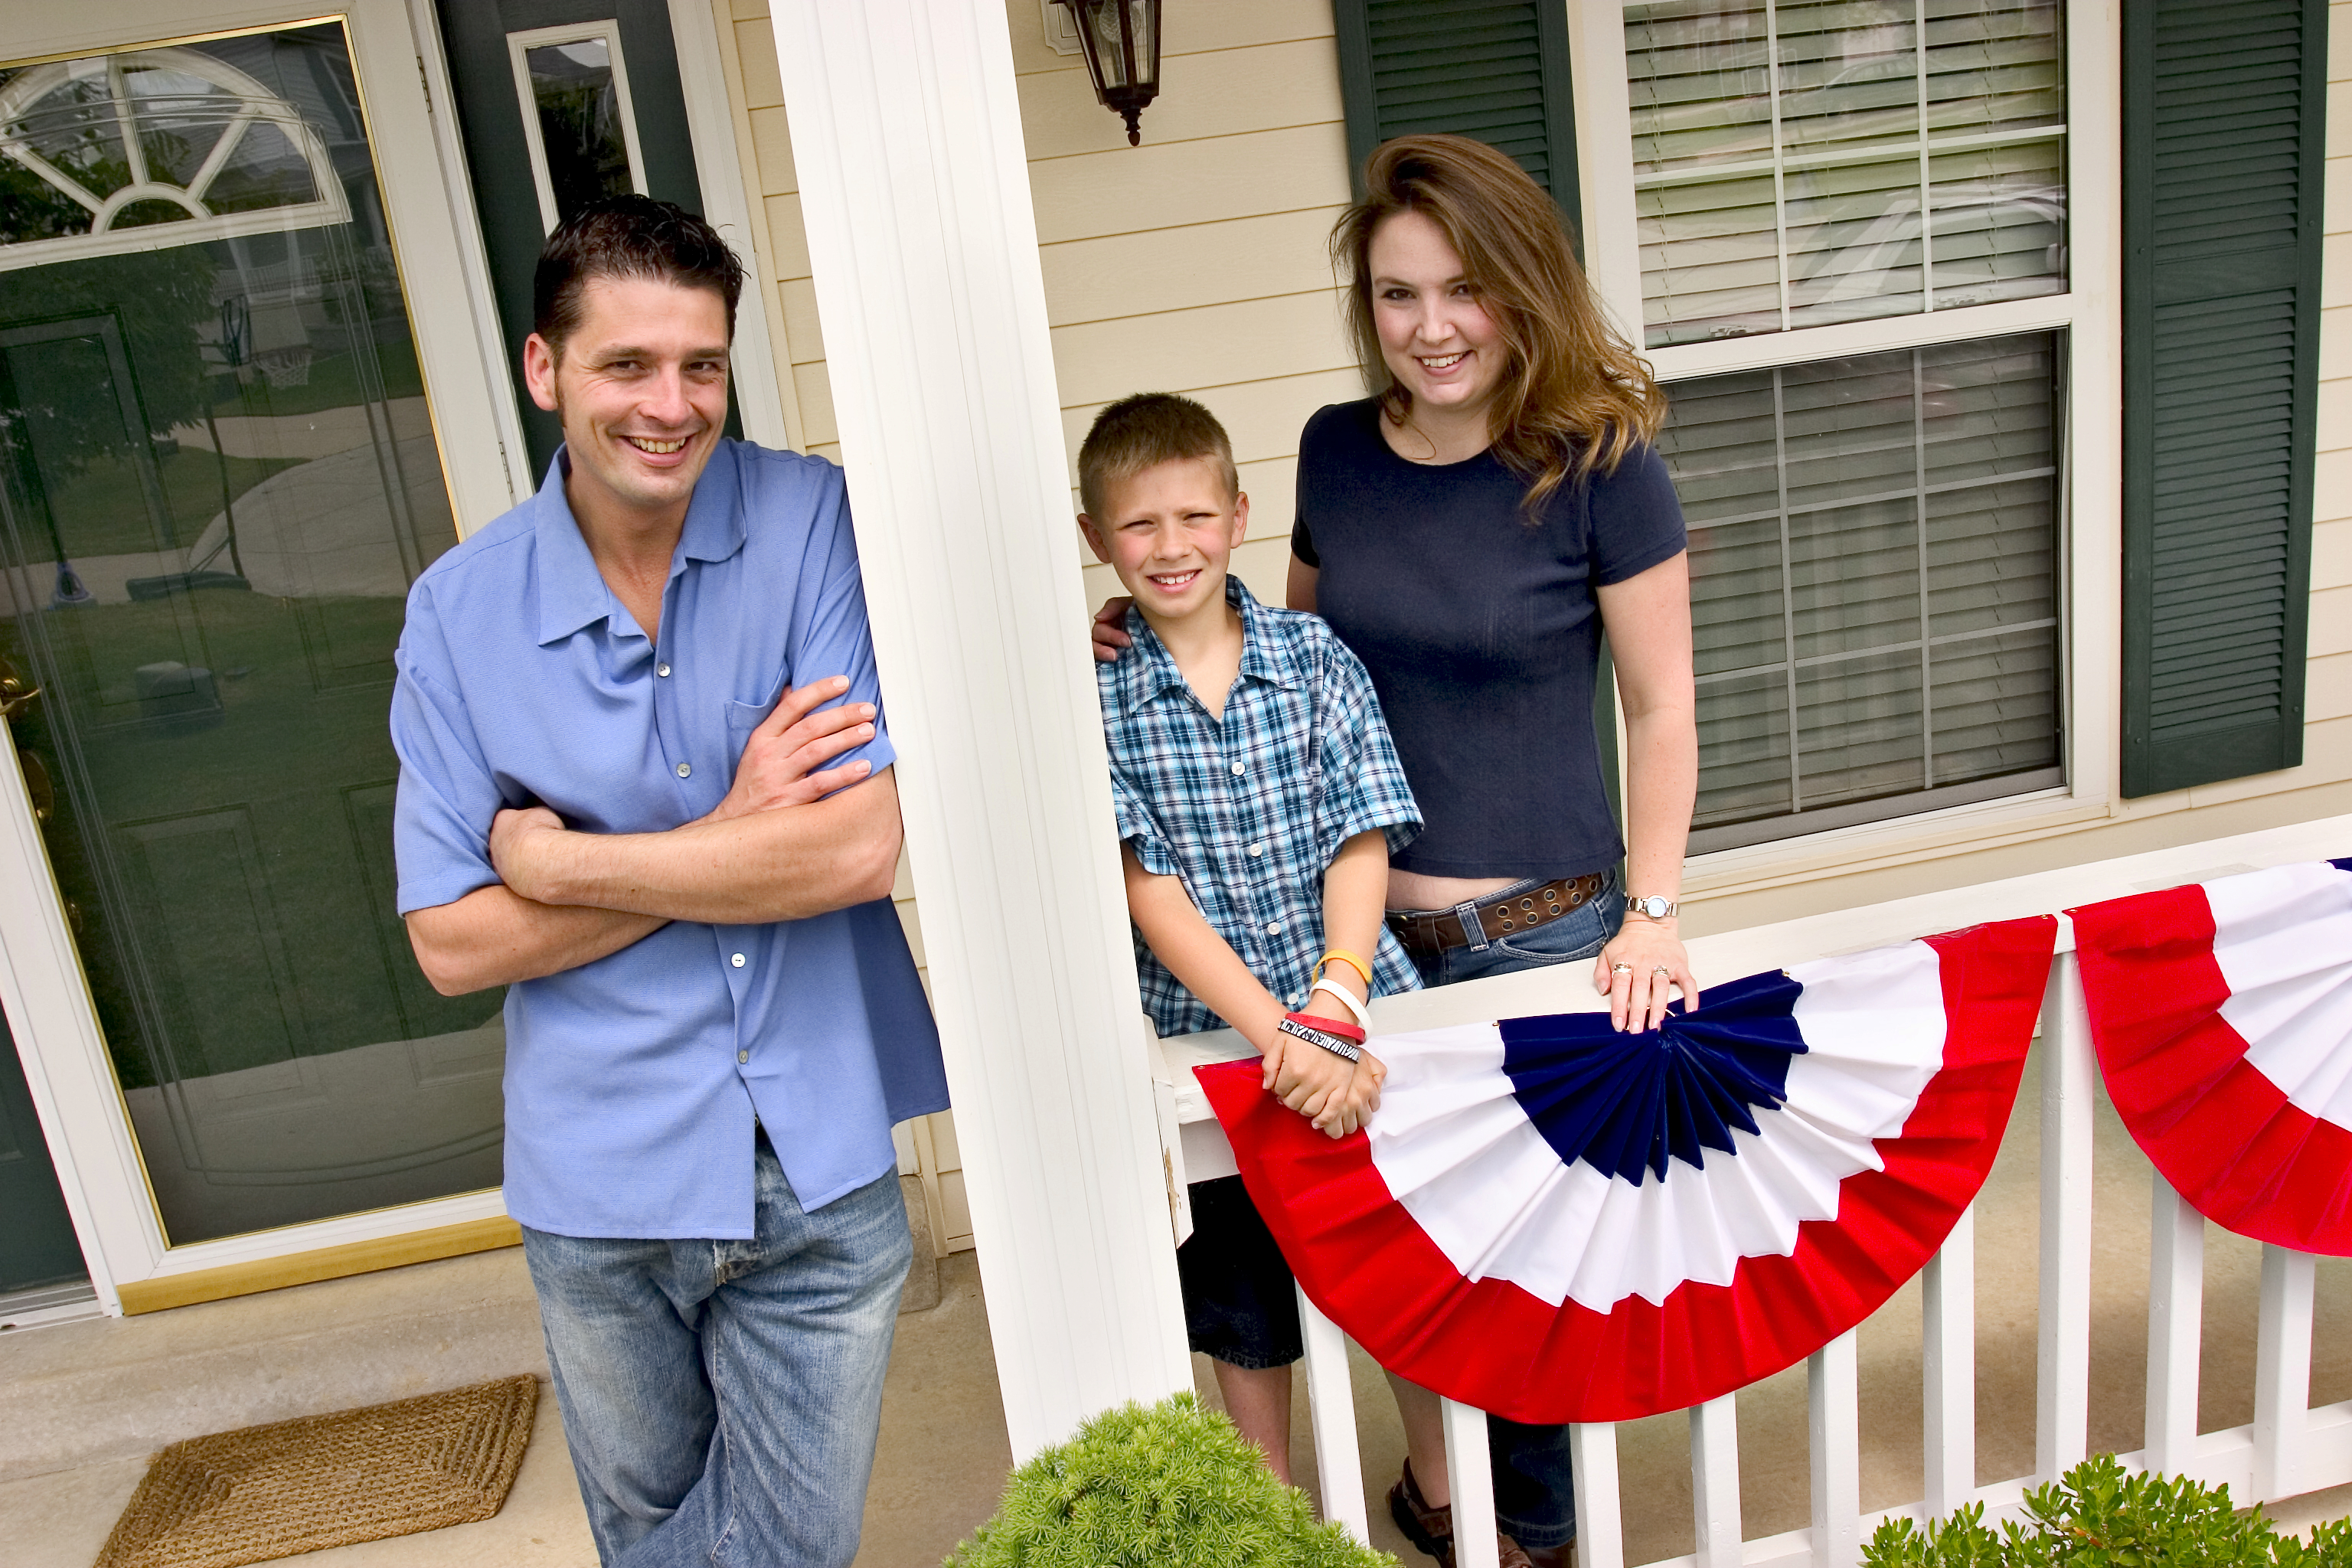 Family standing on front porch of house: Copyright iStock Photos